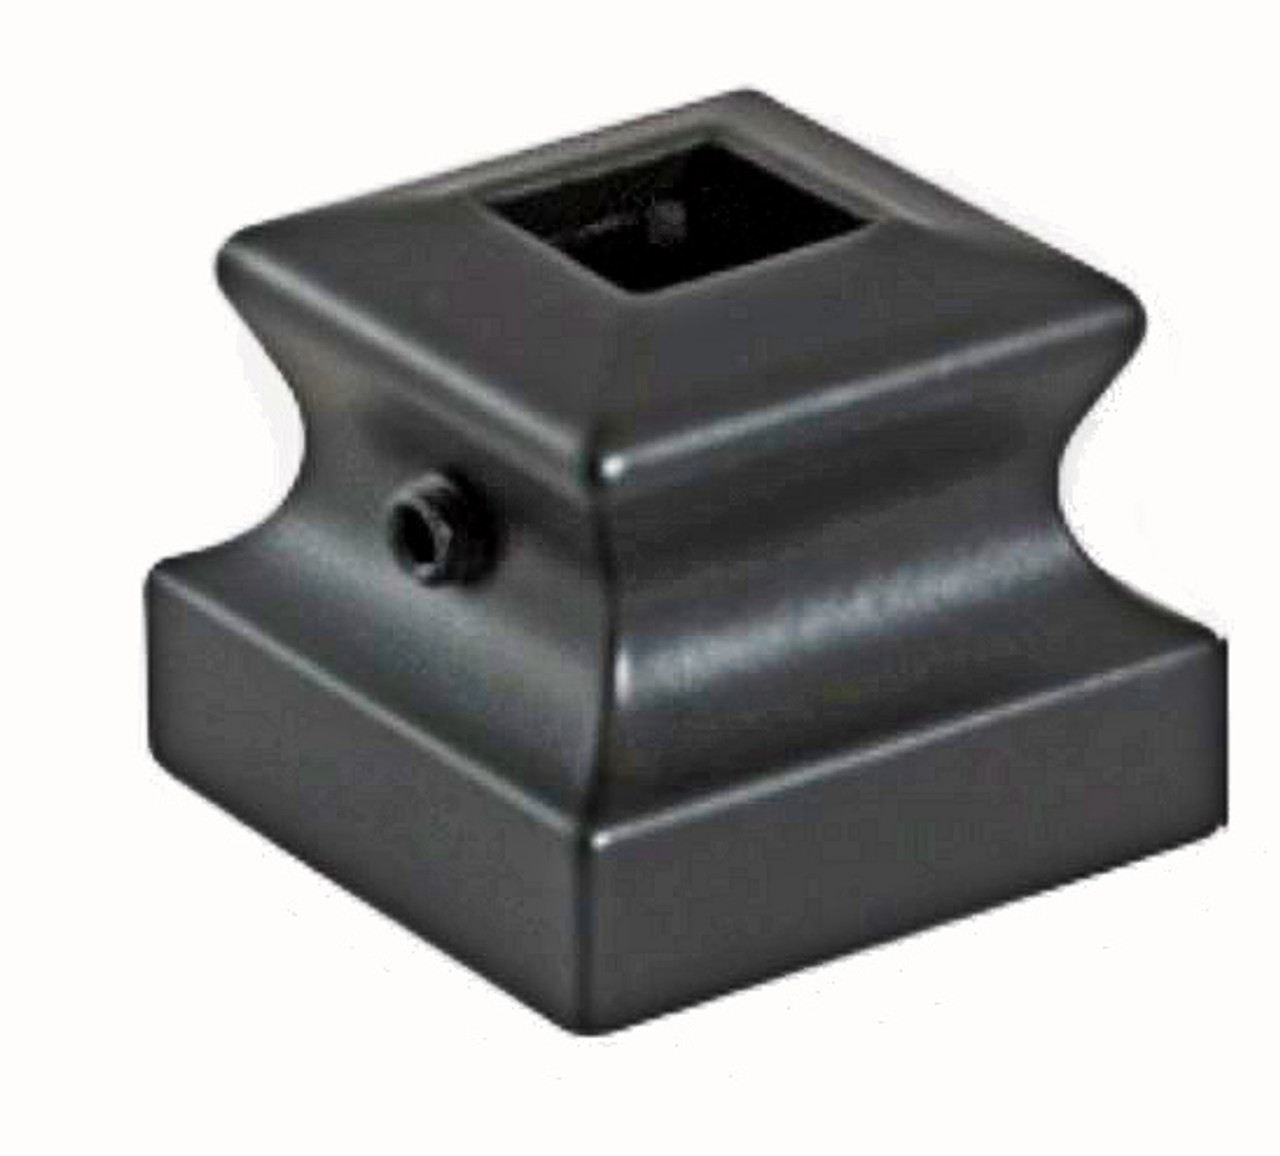 "FI3101-1-1/4 Base Shoe for 1/2"" Balusters"